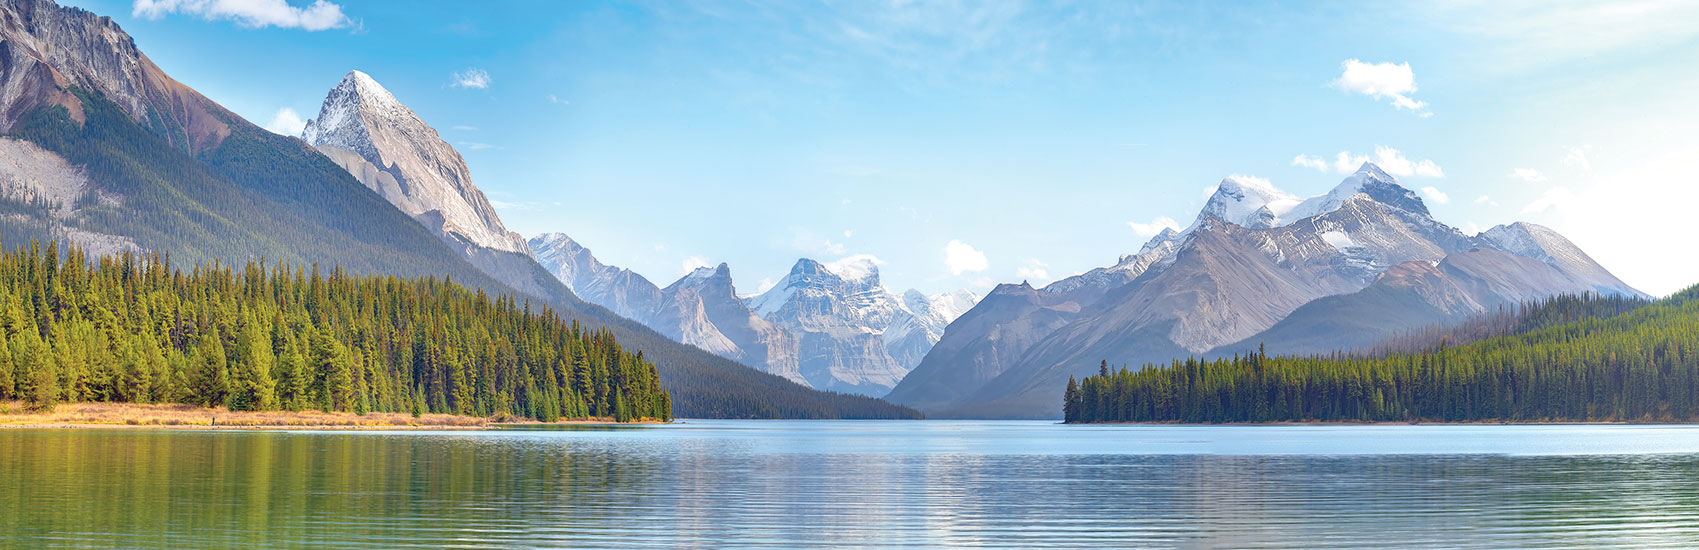 Save on 2021 North American Tours with Globus 2